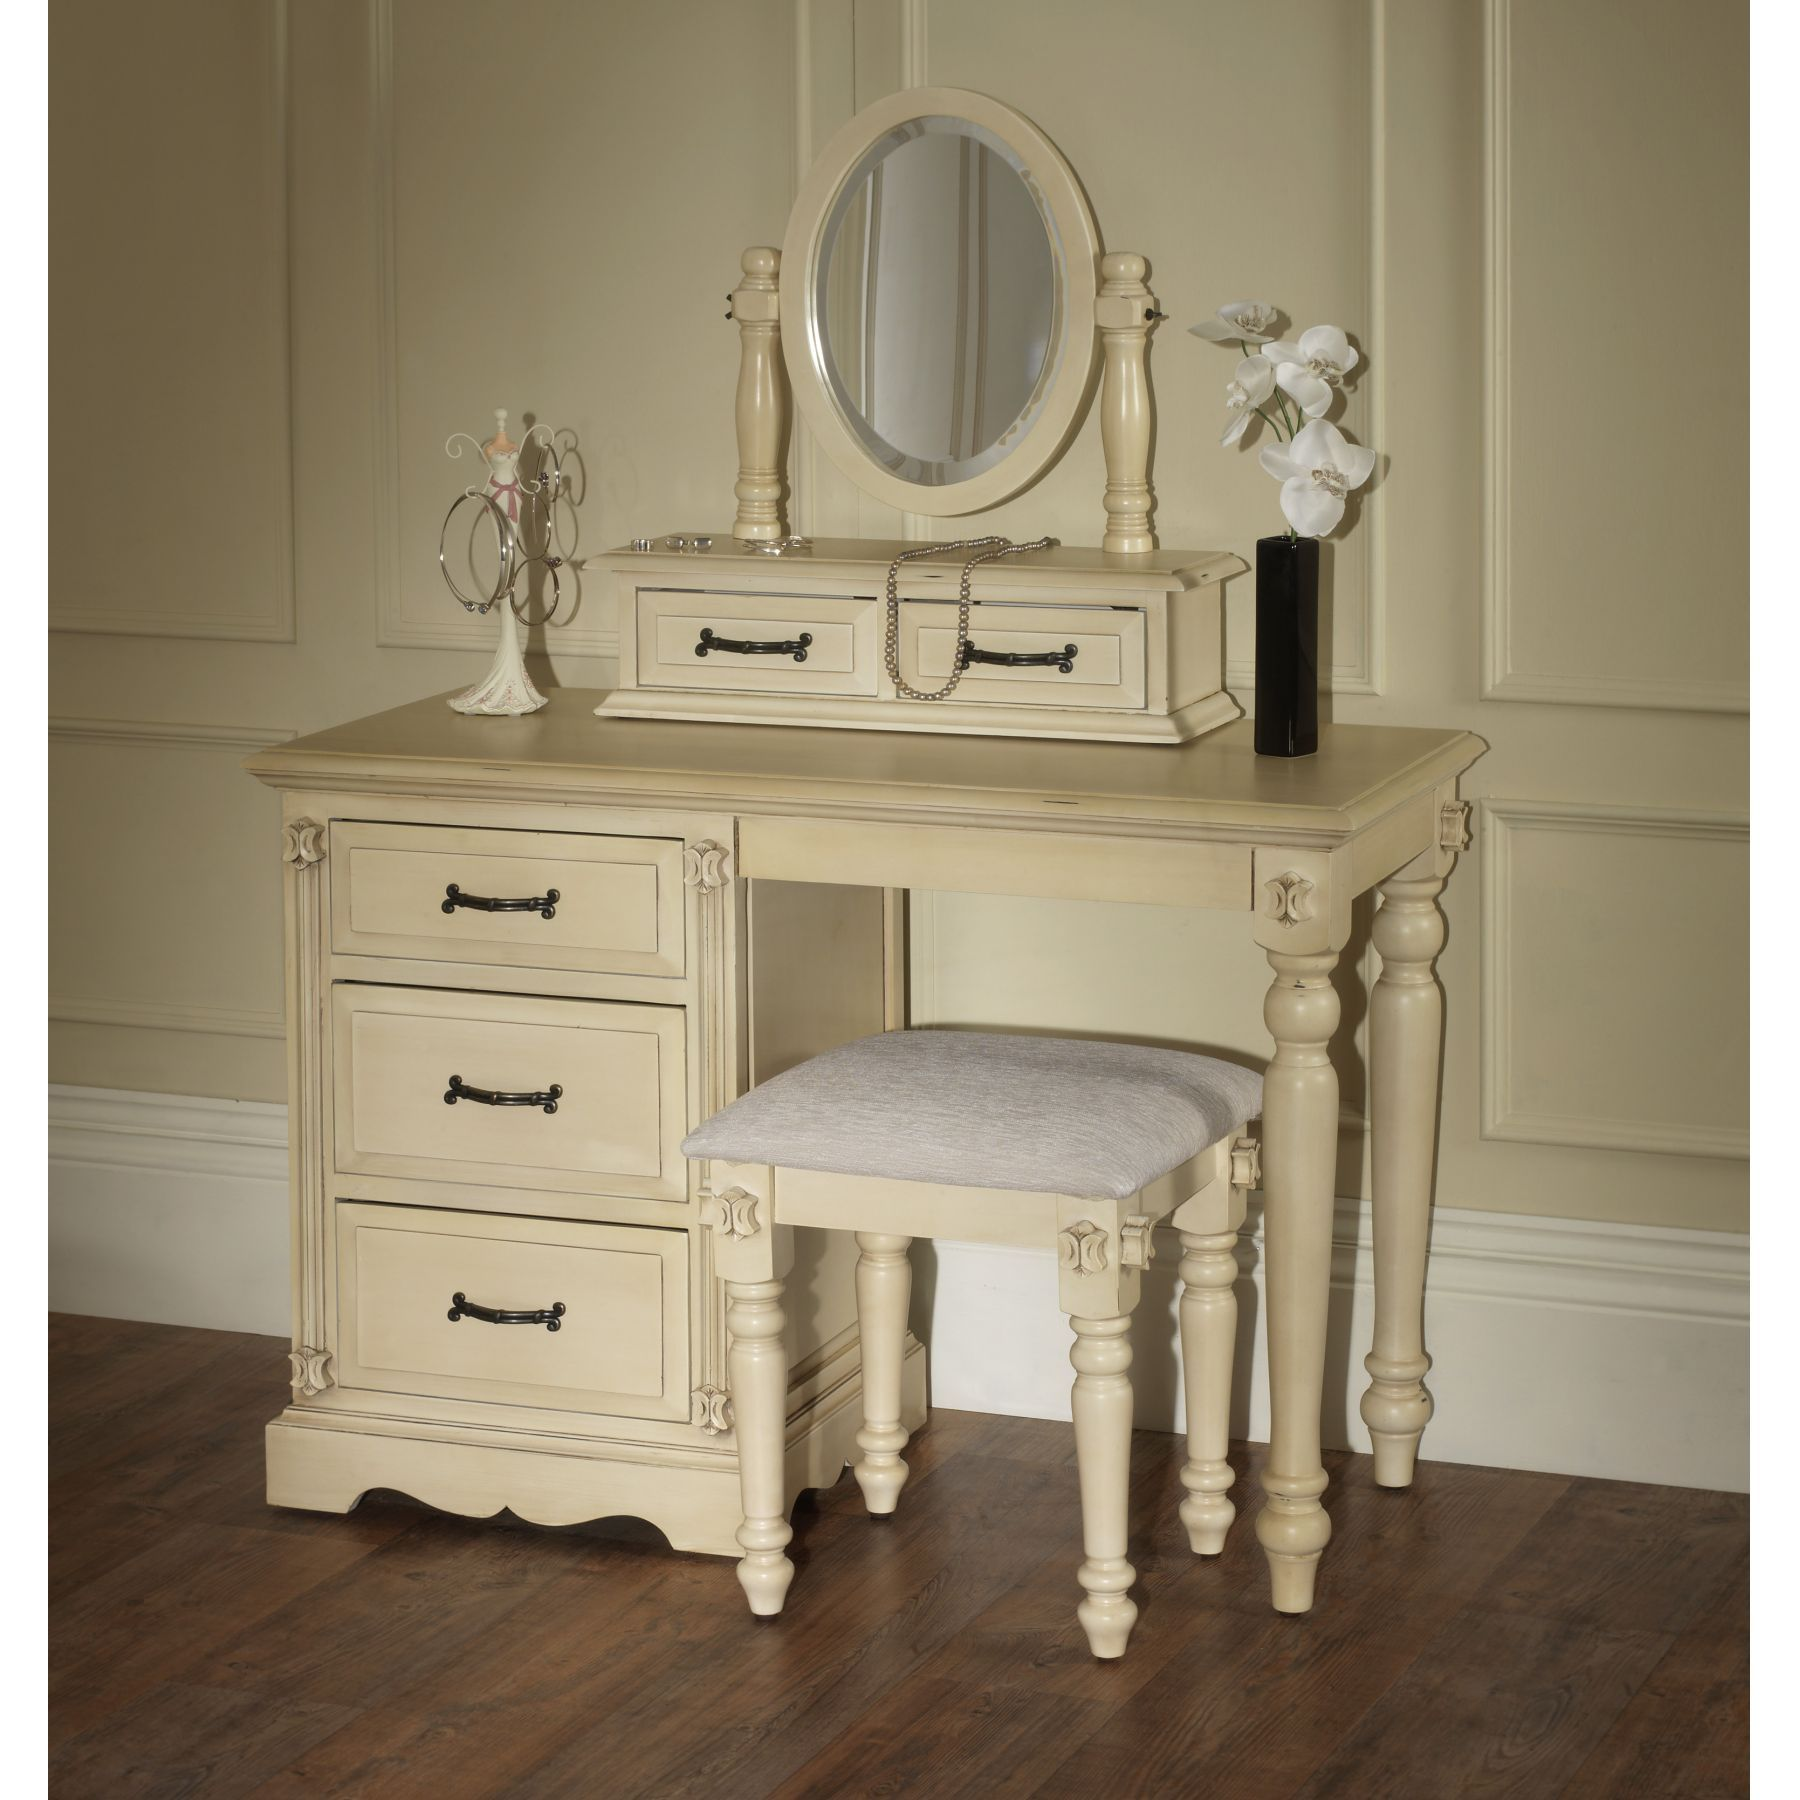 Bedroom furniture dressing table - Victorian Retro Dressing Zoom Antique Bedroom Furniture Antique Bedroom Furniture Home Decorating And Architecture Ideas